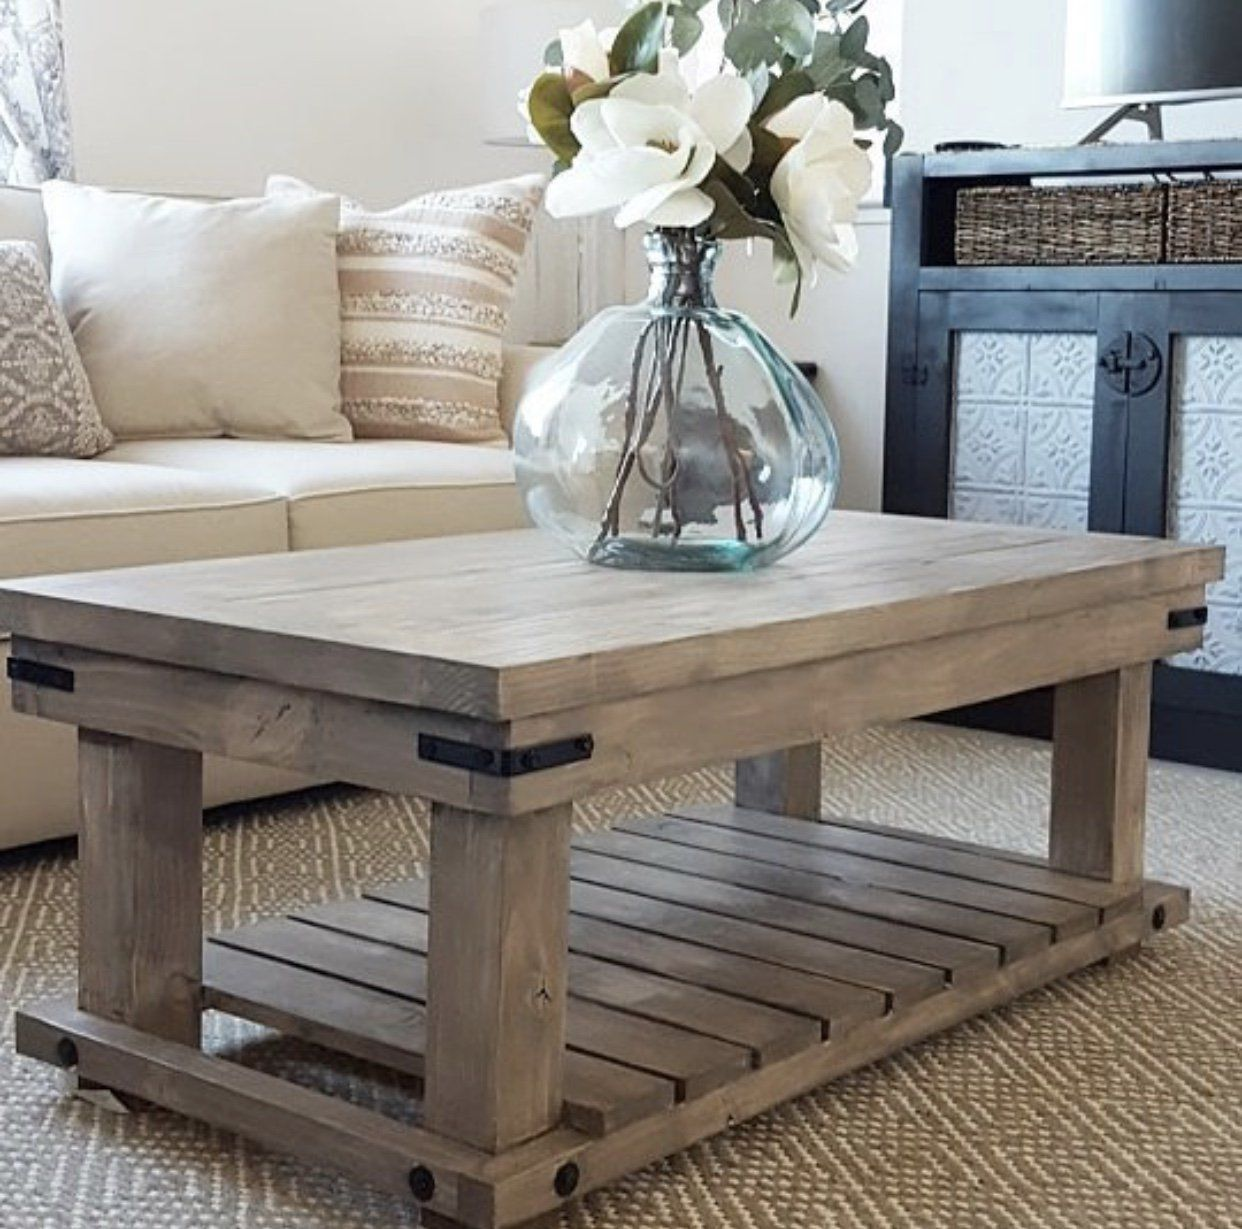 Diy Industrial Coffee Table Coffee Table Farmhouse Decorating Coffee Tables Farmhouse Style Coffee Table